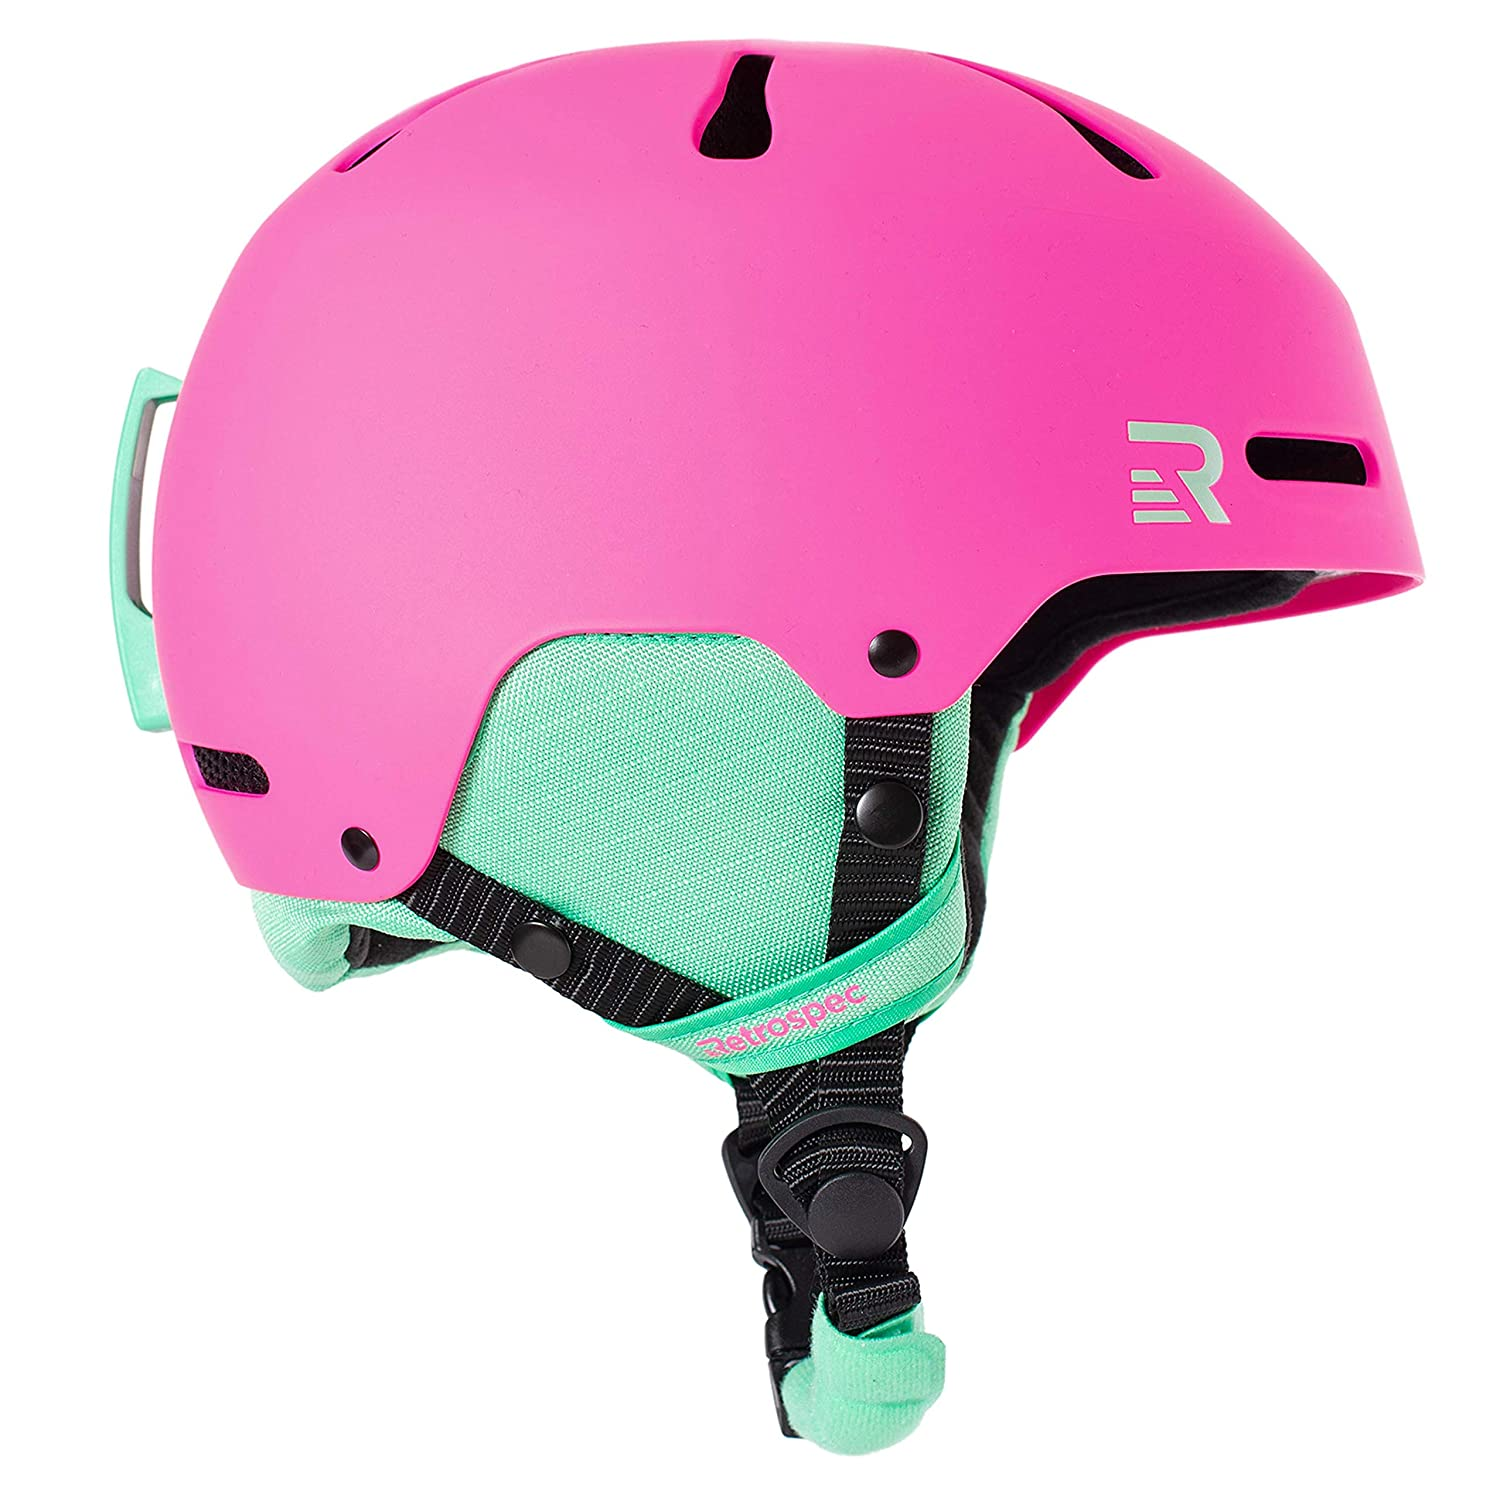 Top 15 Best Ski Helmet for Kids Reviews in 2020 13